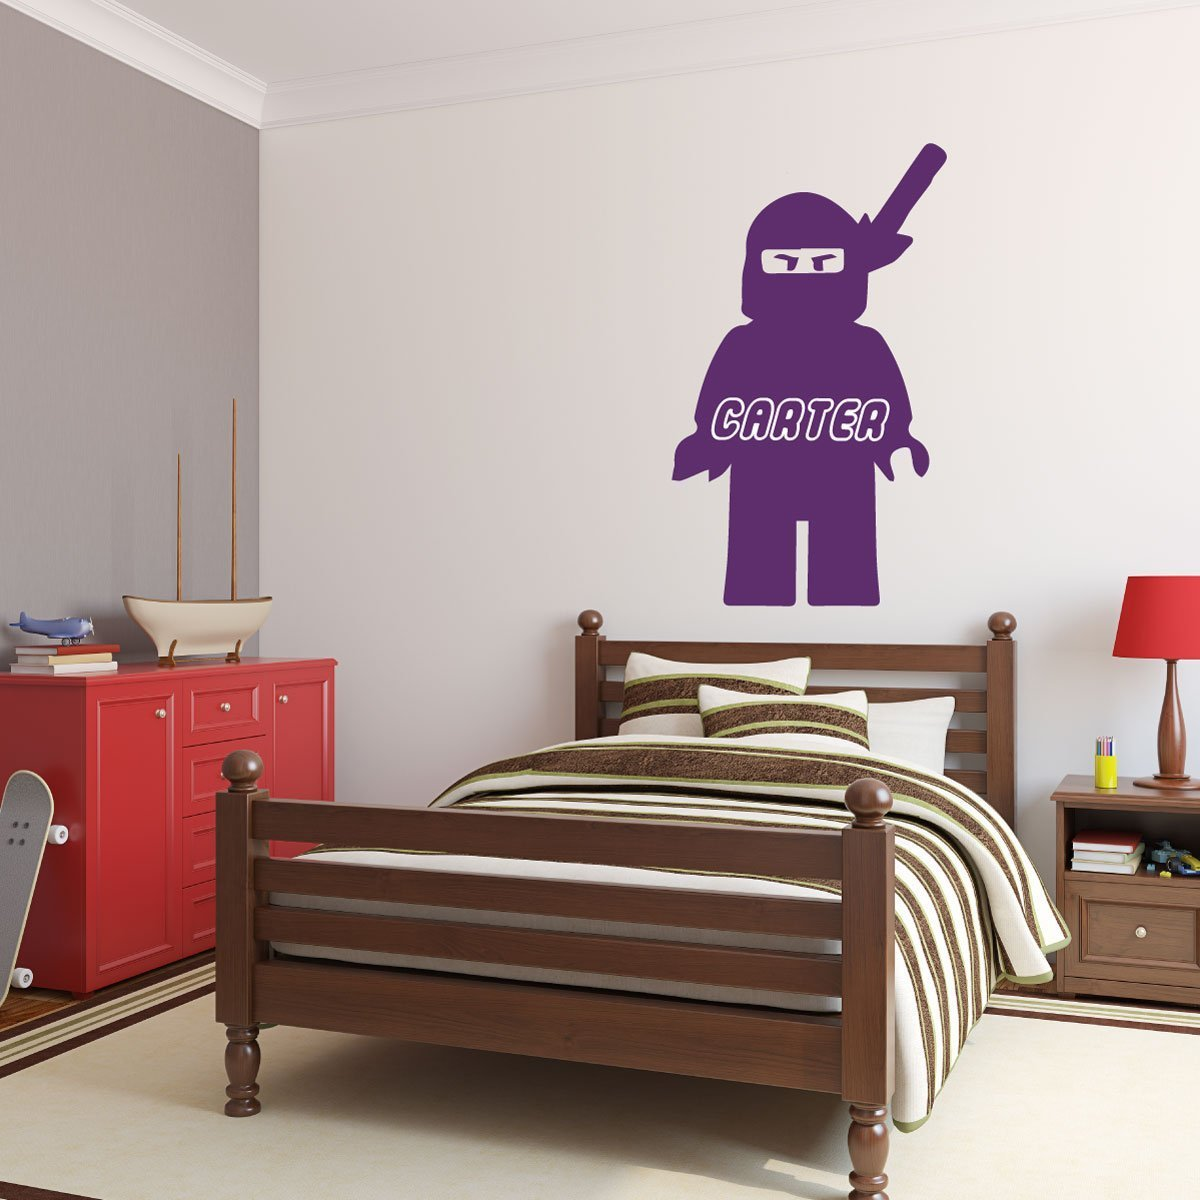 Super Personalized Wall Decal Lego Ninjago With Name In Character Download Free Architecture Designs Scobabritishbridgeorg